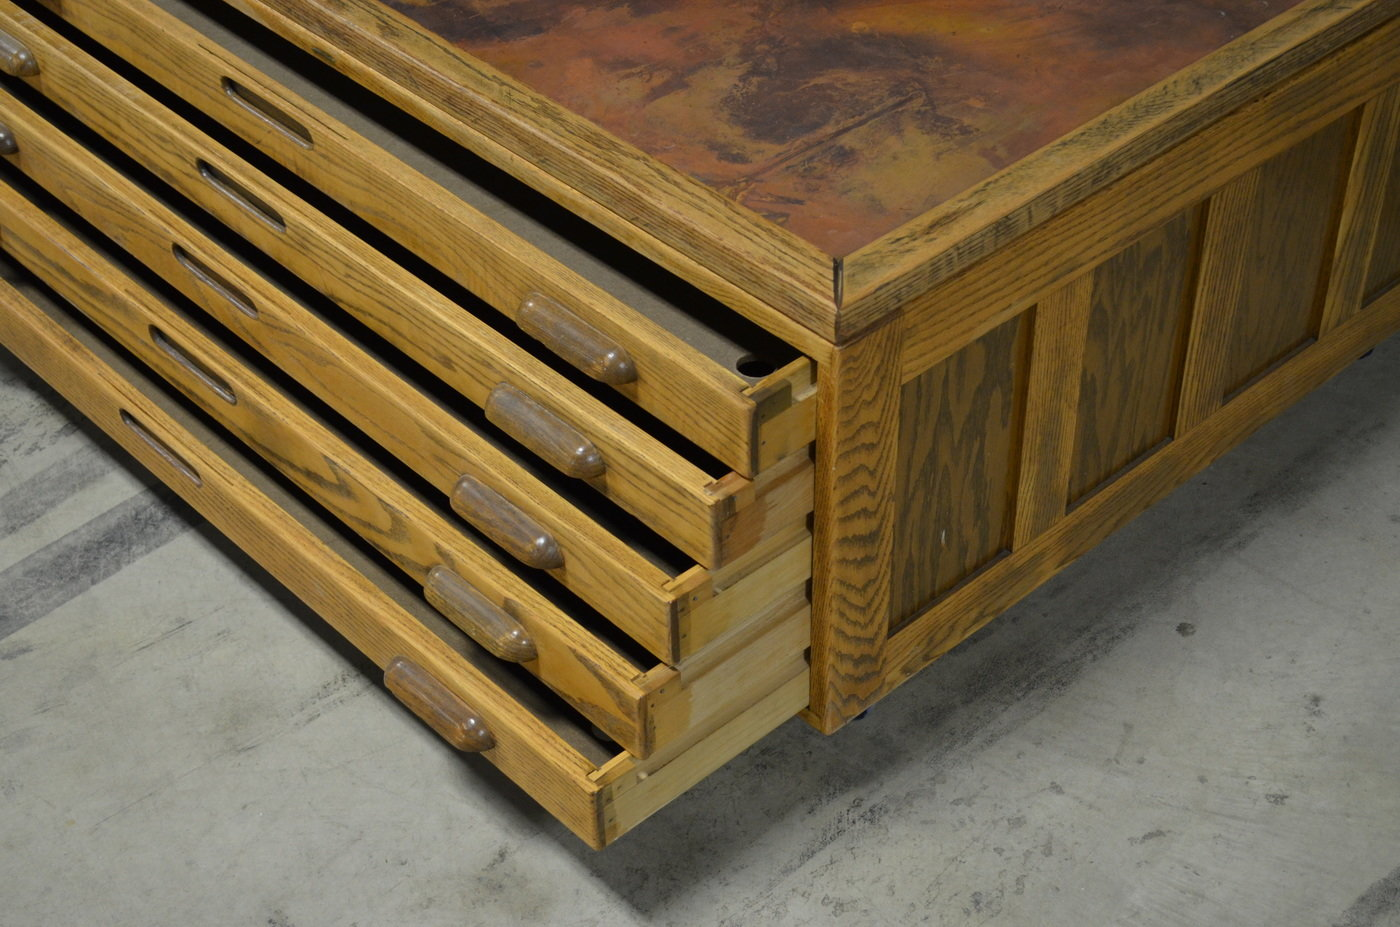 - Hamilton Flat File Coffee Table By Downtown Woodworks At Coroflot.com